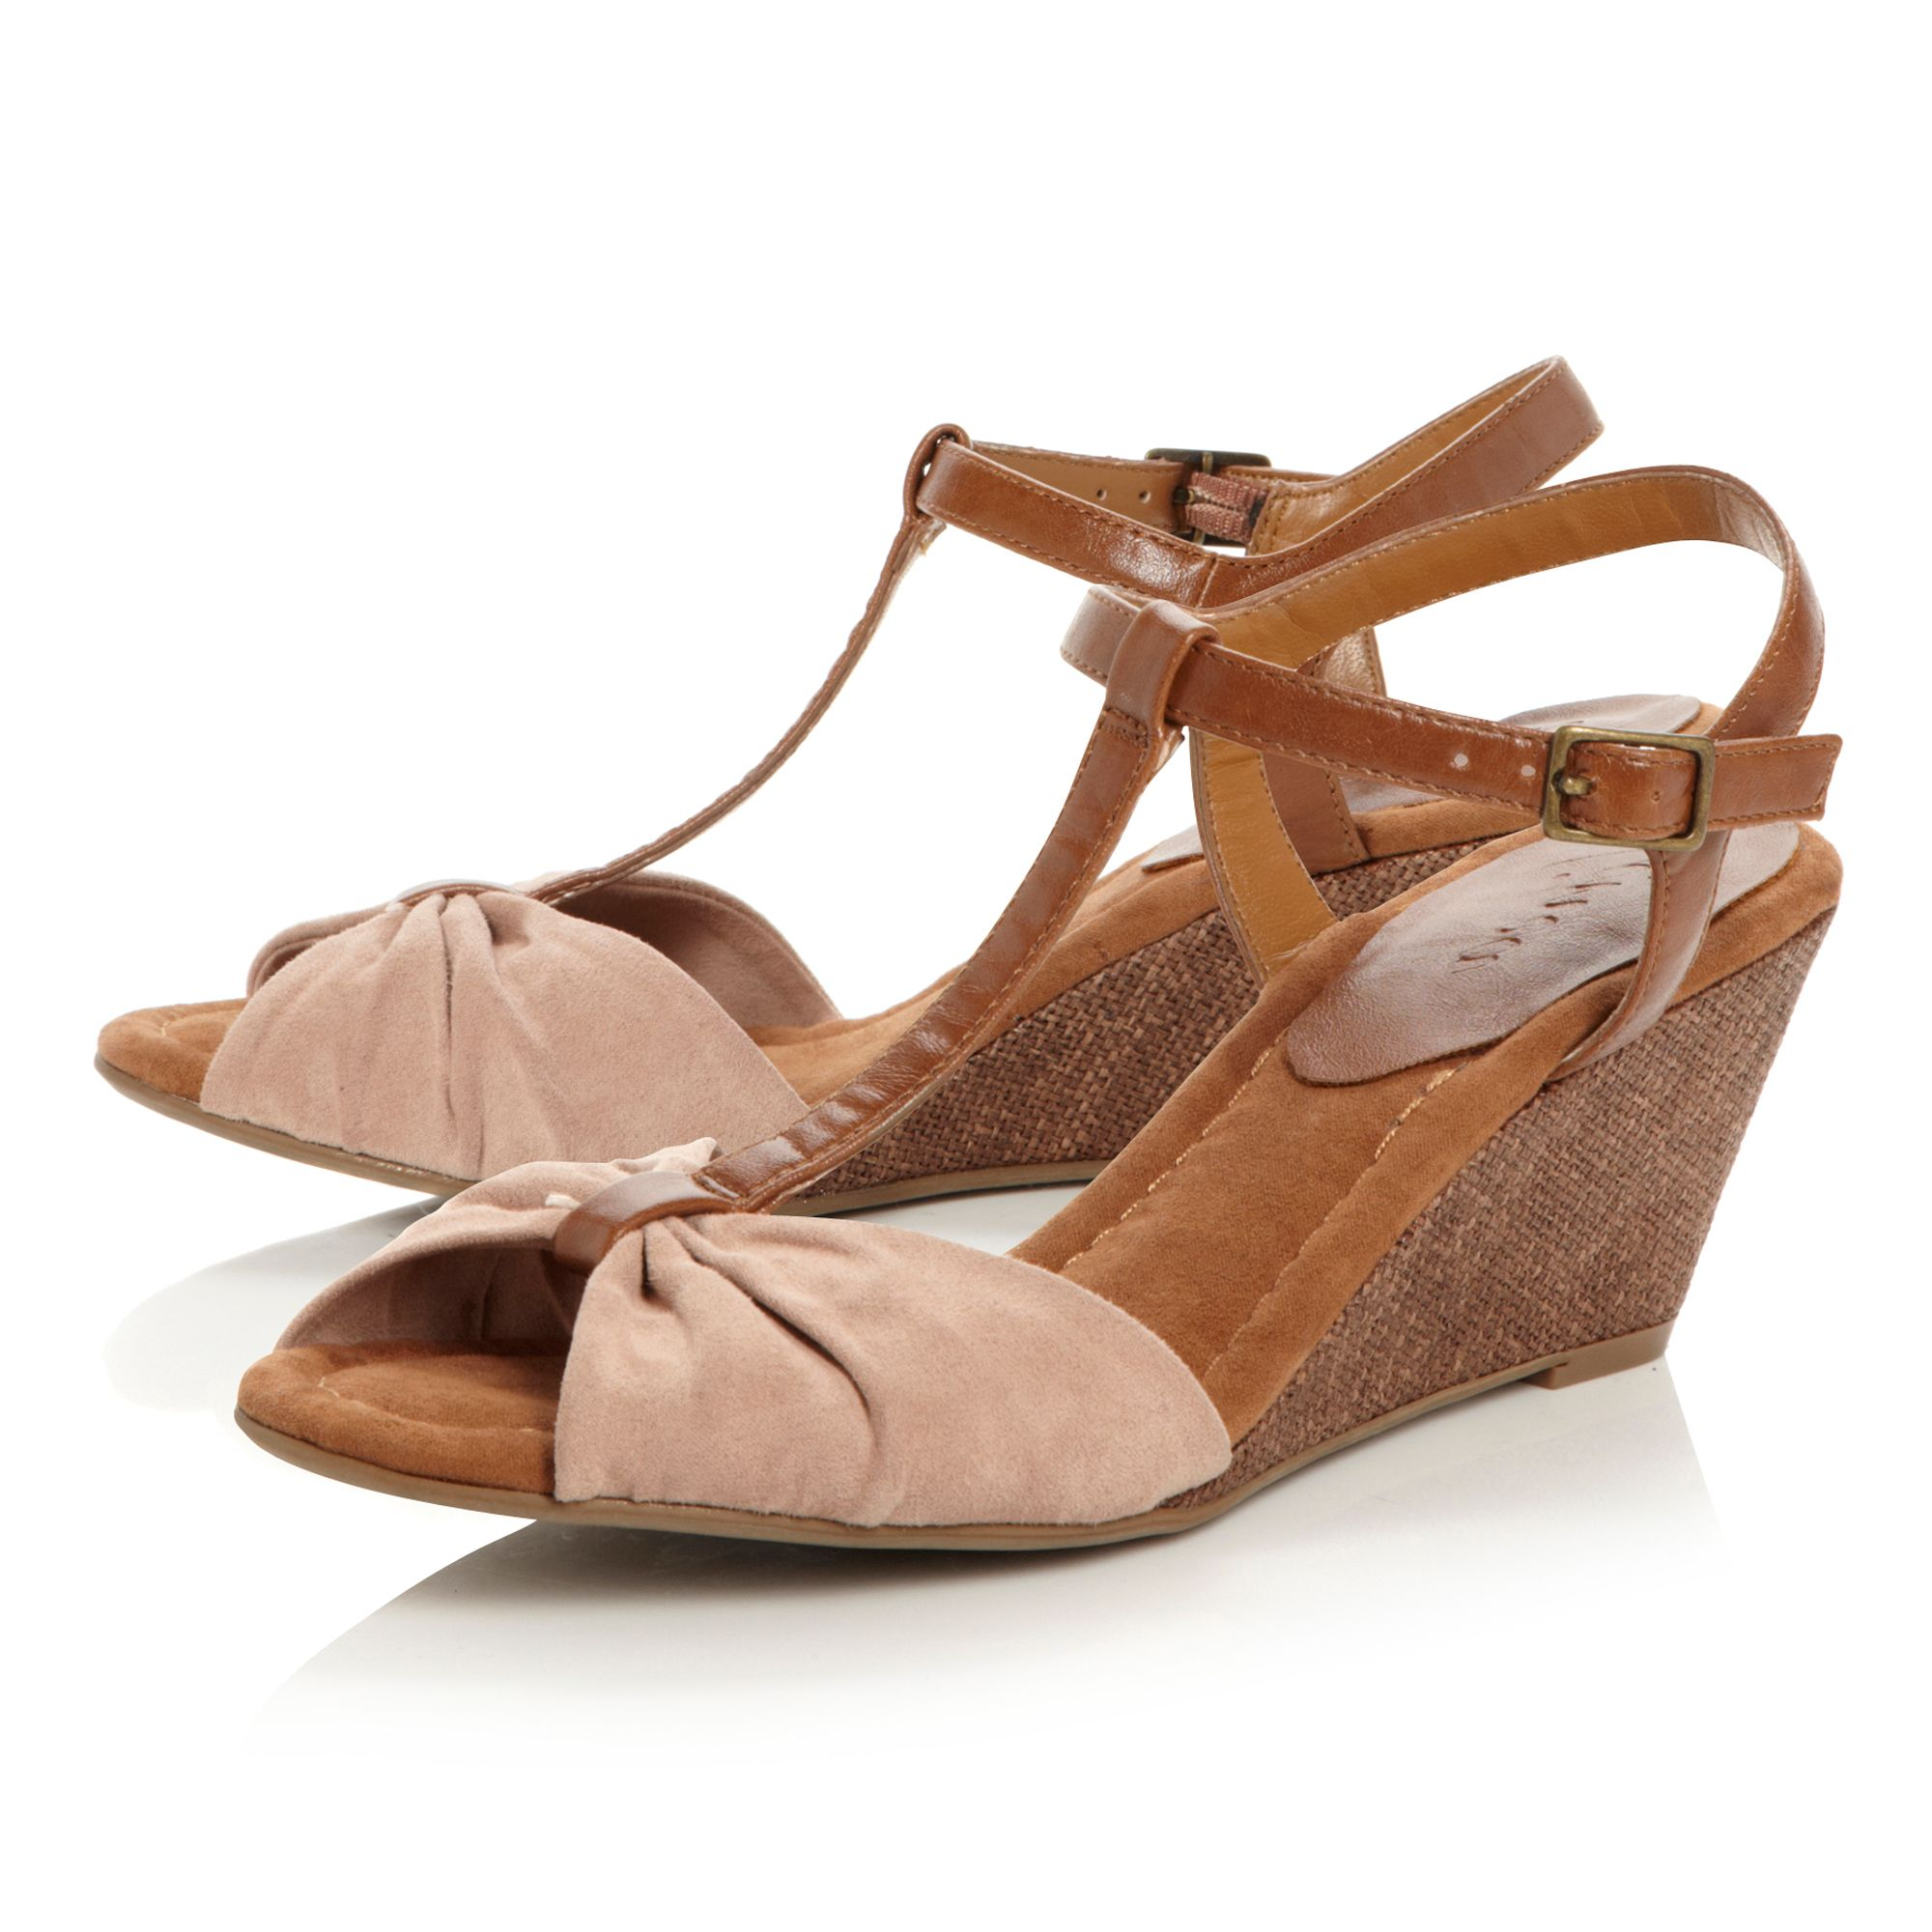 Gombard T-bar low wedge sandals